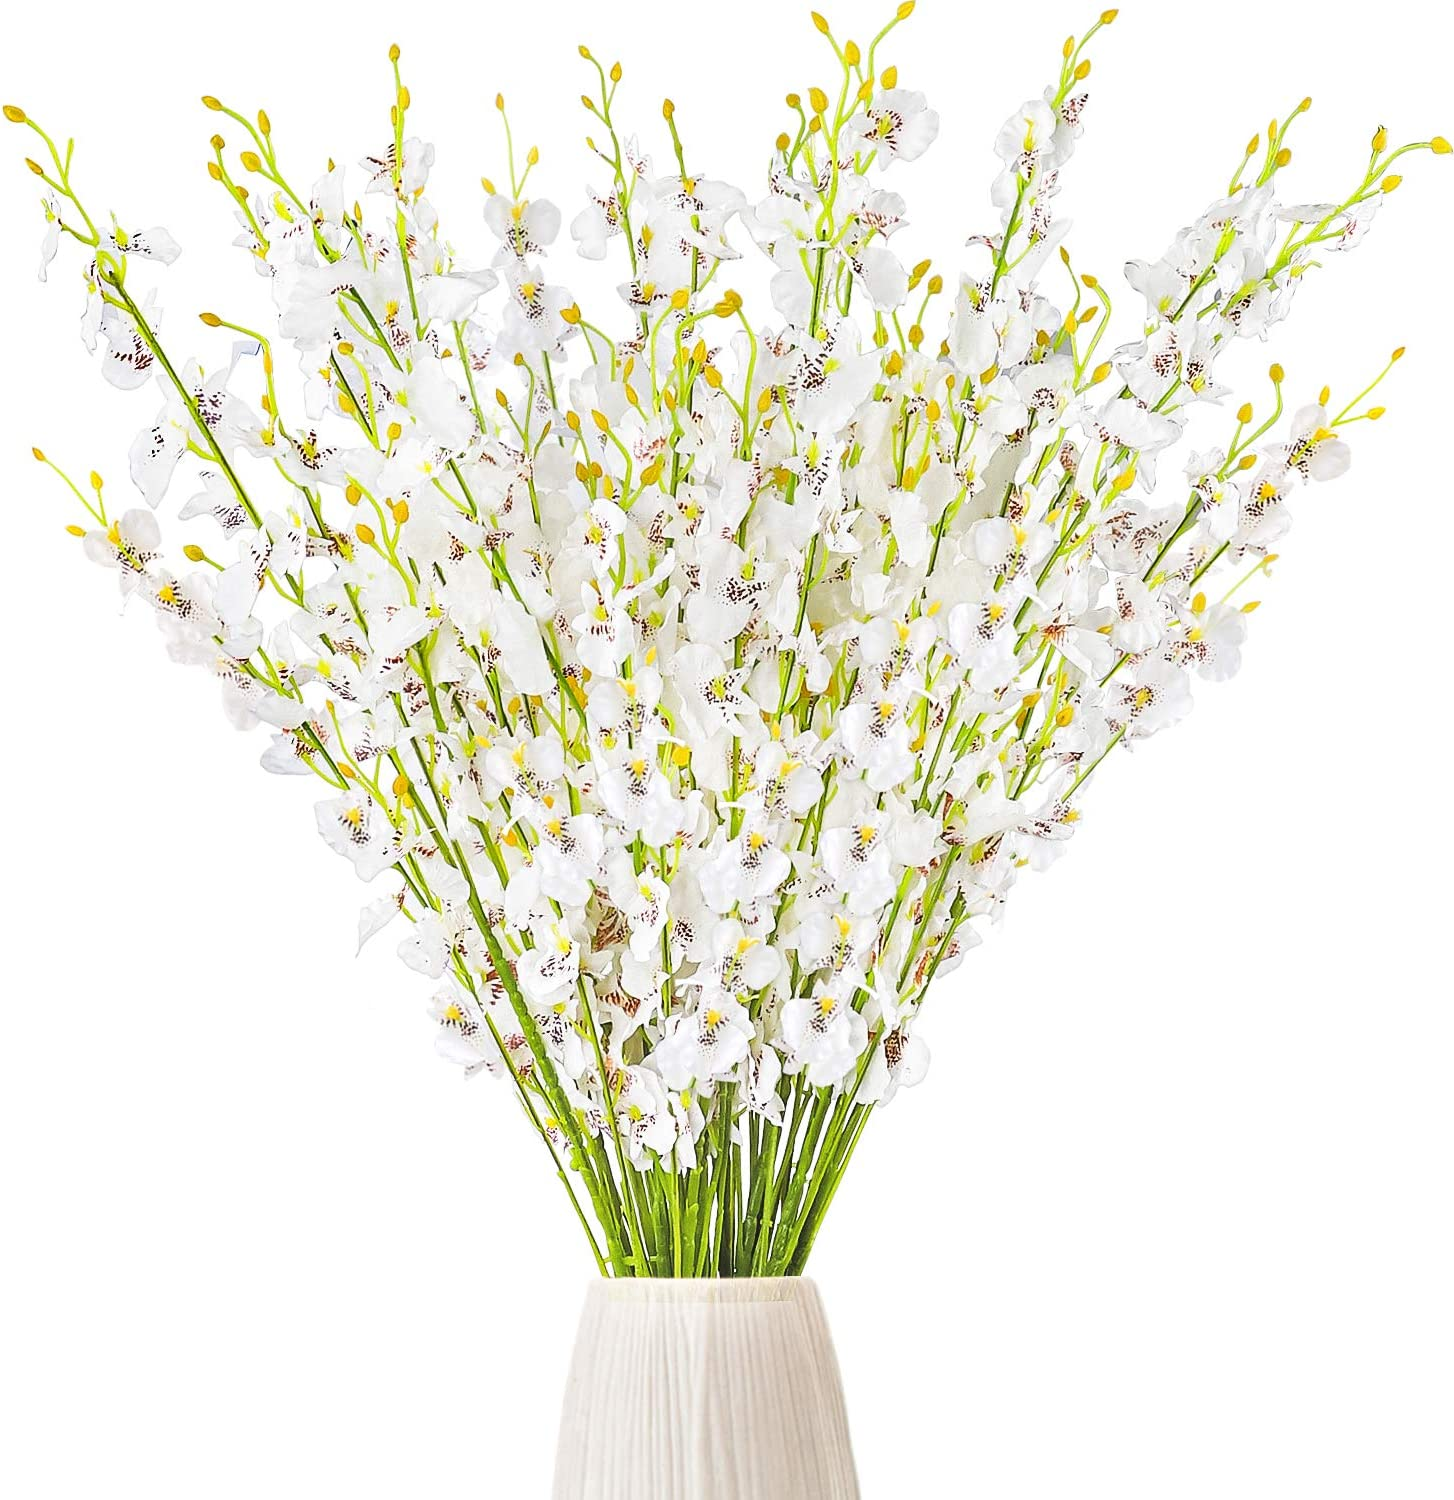 CEWOR 15pcs Artificial Orchids Flowers Silk Fake White Orchids Flowers Faux Dancing Lady Orchids Stems for Wedding Home Office Festive Party Decoration